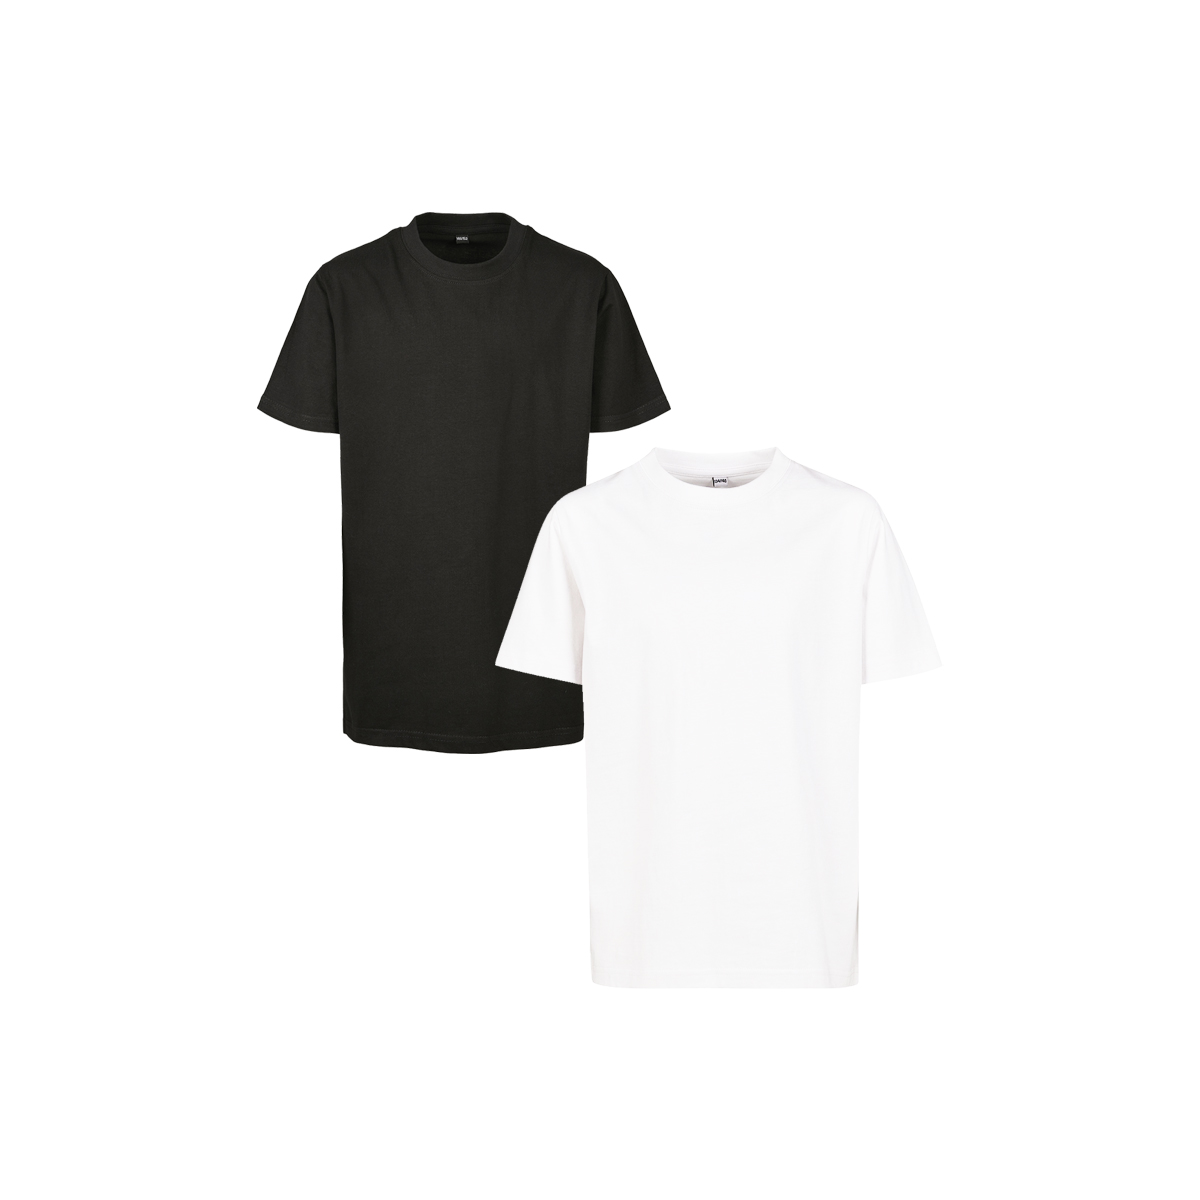 ONE AND ONE MAKES TWO - T-shirt Kids - BLK WHT - Frank Willems